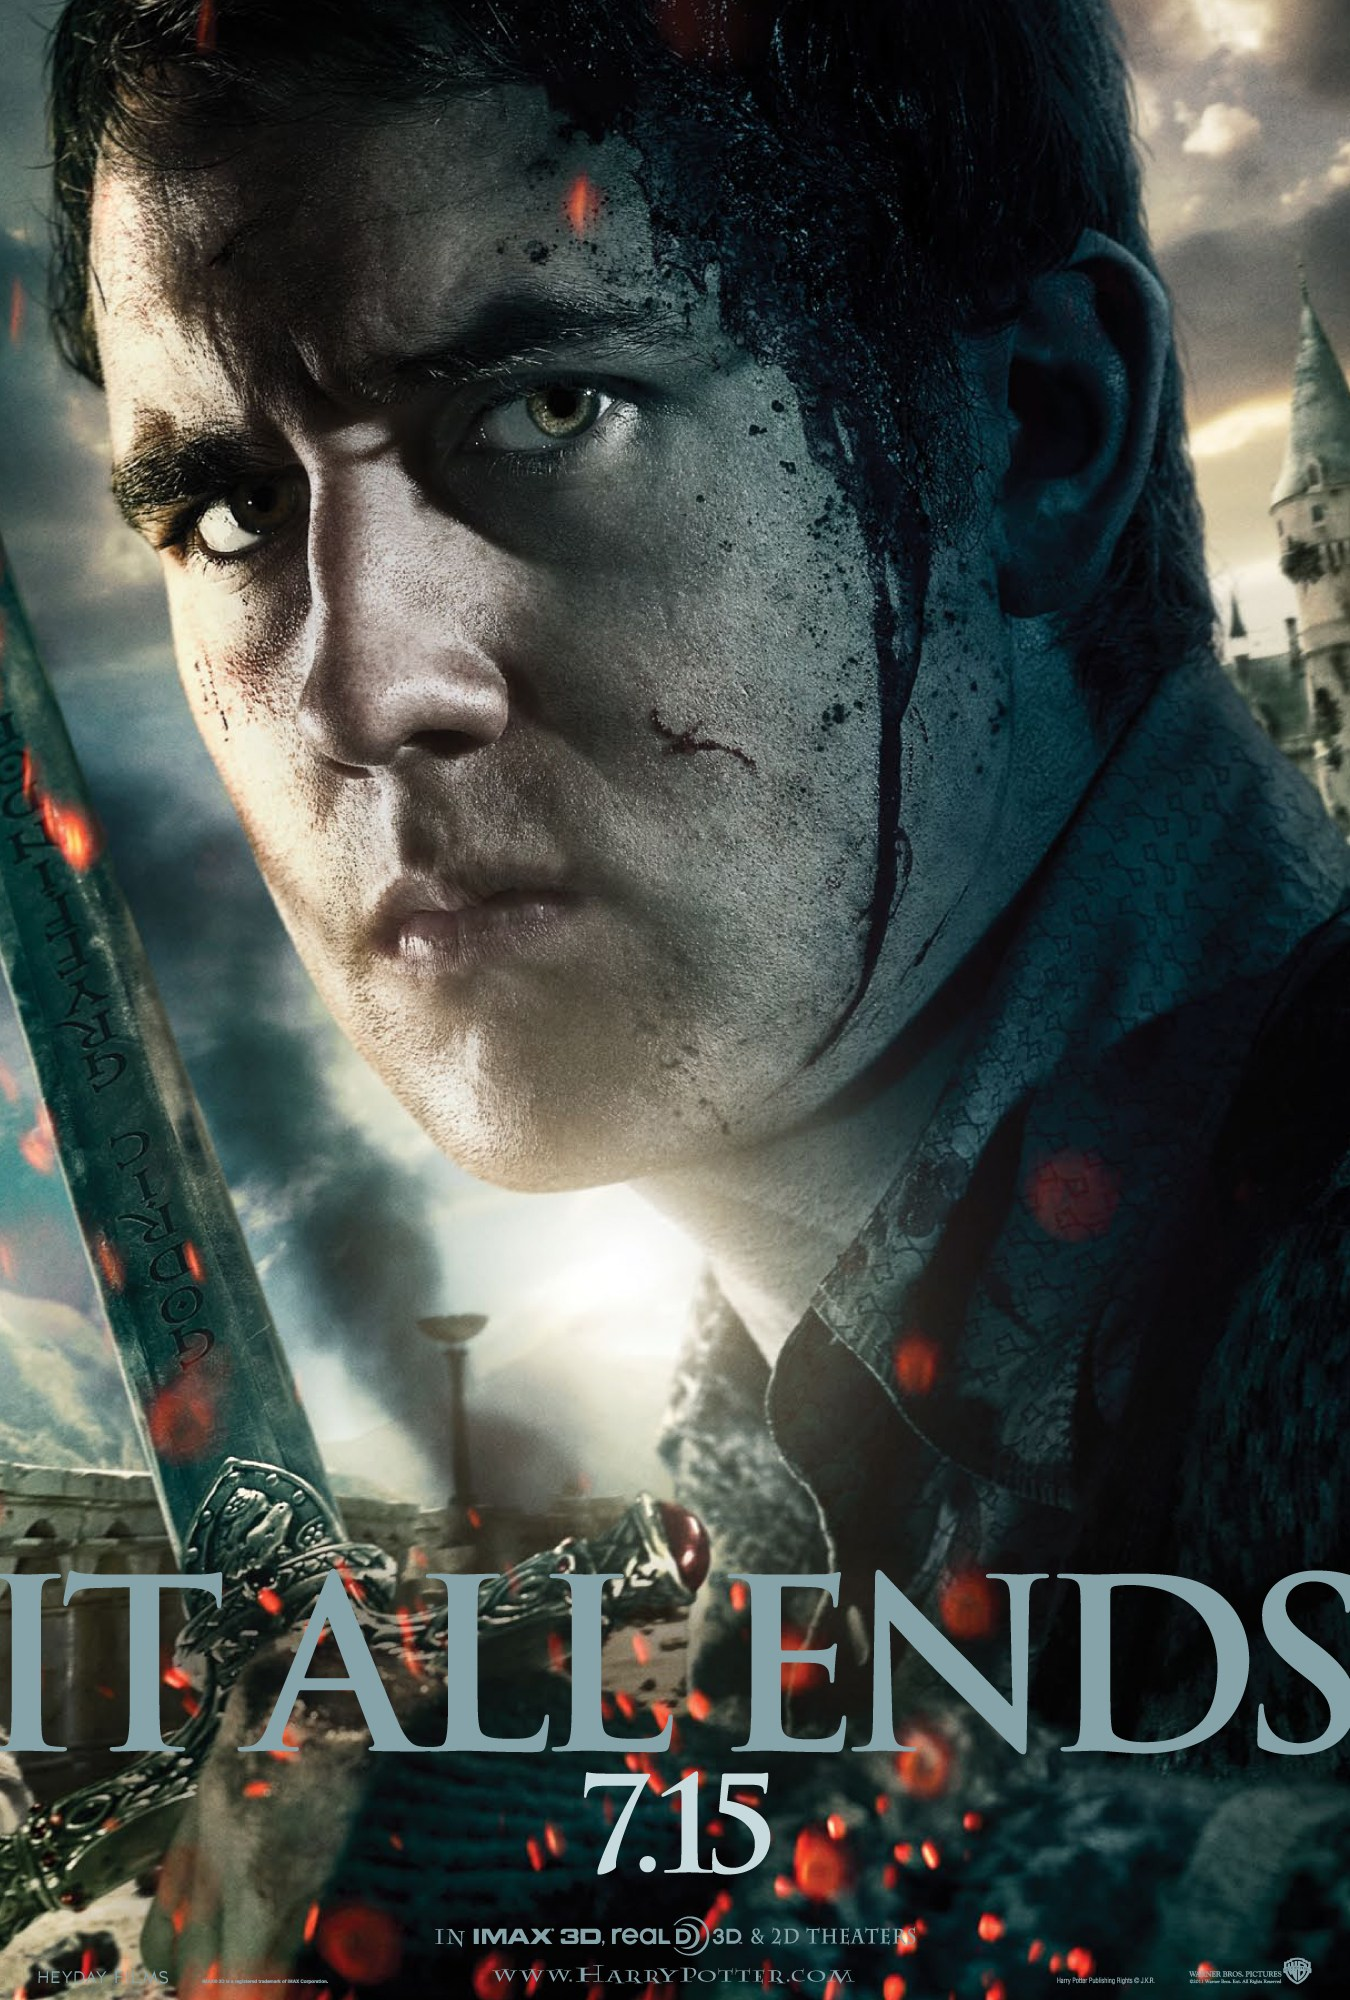 'Deathly Hallows: Part 2' Neville poster #2